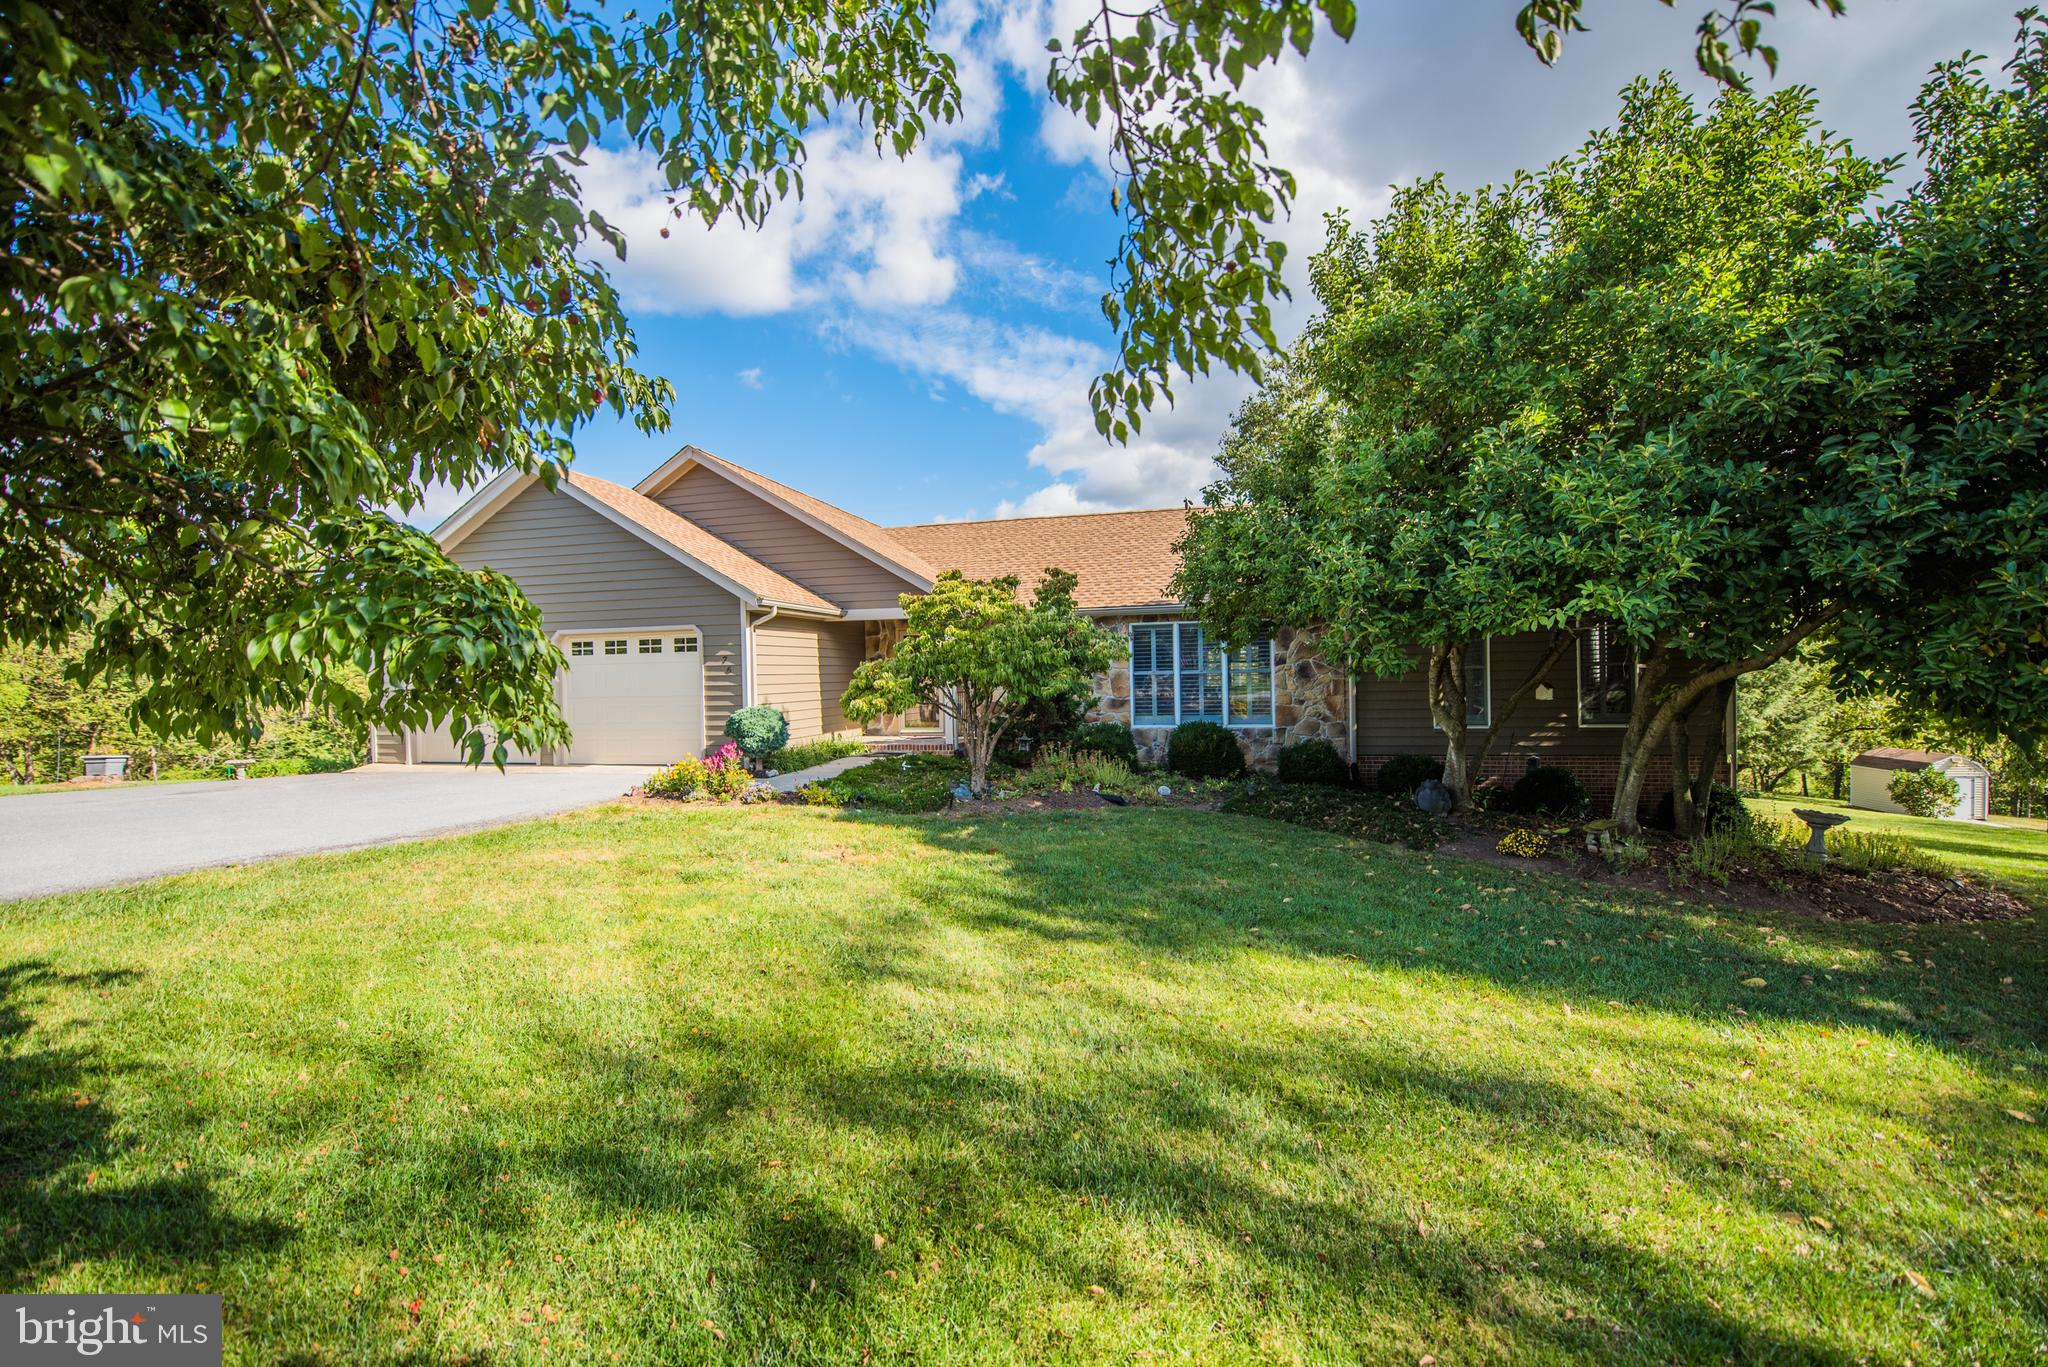 This lovingly cared for ranch home, finished on both levels with an awesome glass sun room addition,